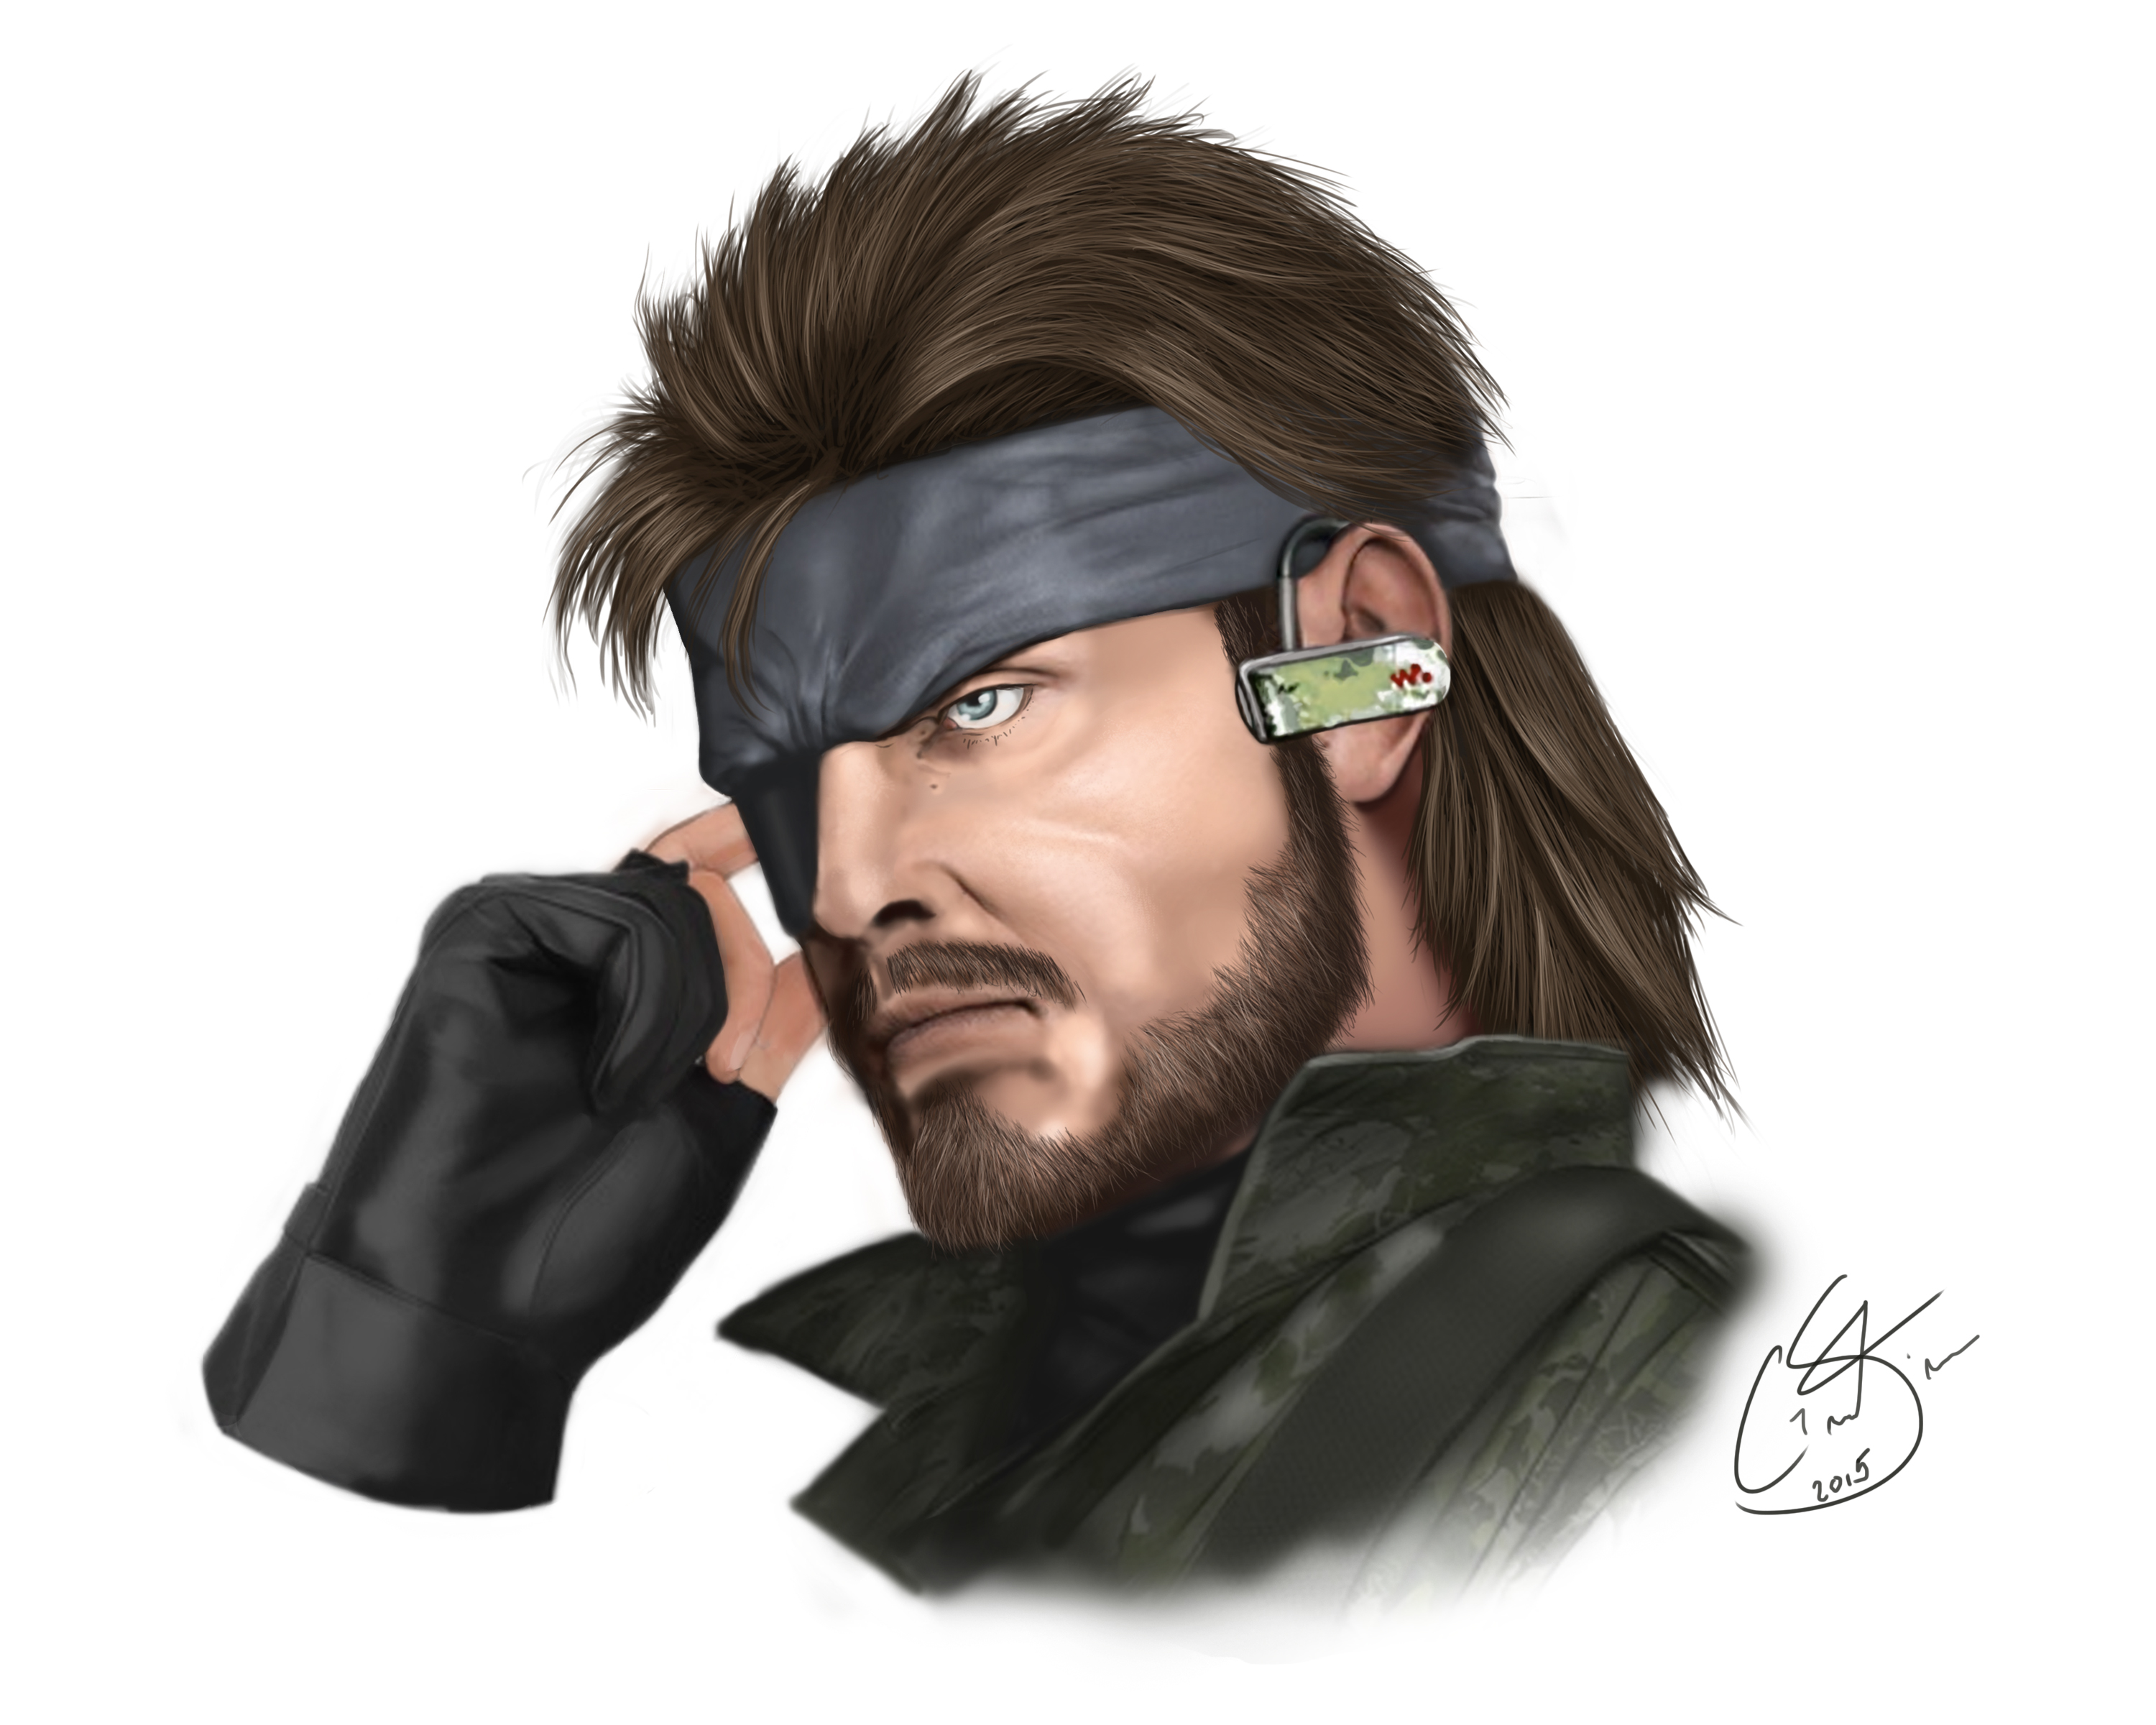 Big Boss fan art